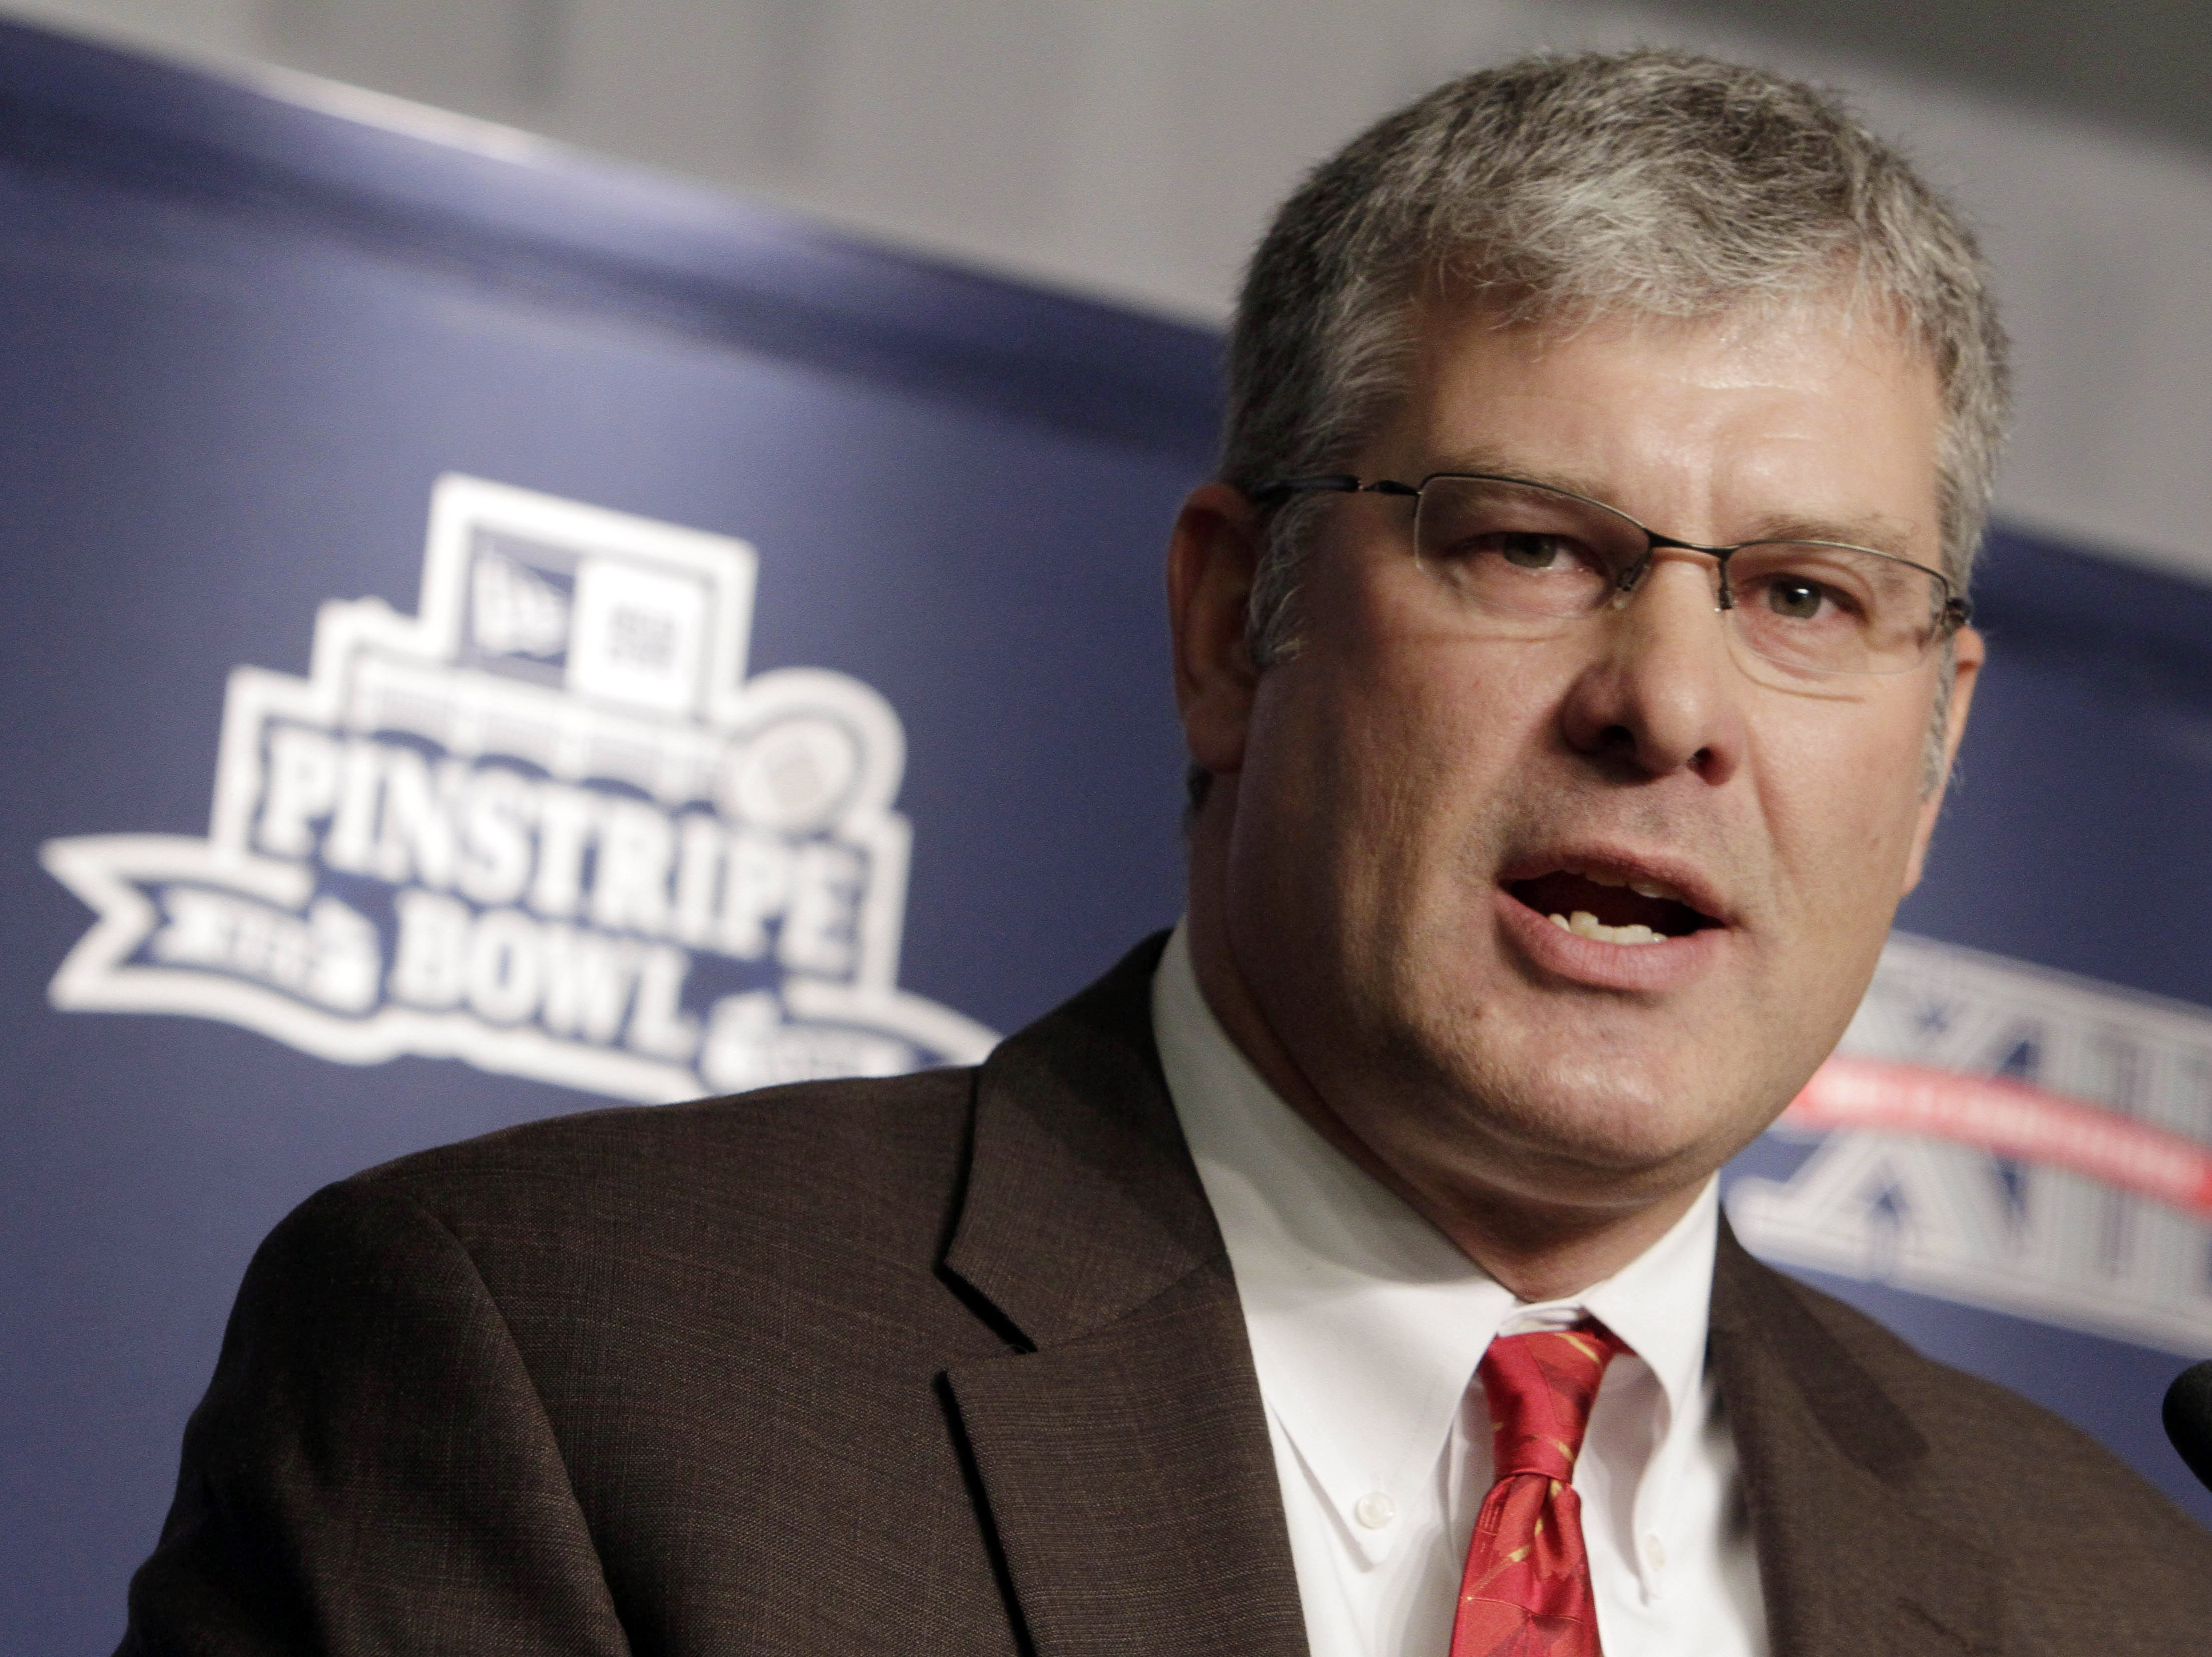 Iowa State coach Paul Rhoads addresses the media  during an NCAA college football news conference at New York's Yankee Stadium,  Wednesday, Dec. 7, 2011. Iowa State is scheduled to takes on Rutgers in the New Era Pinstripe Bowl at the stadium on Dec. 30, 2011.